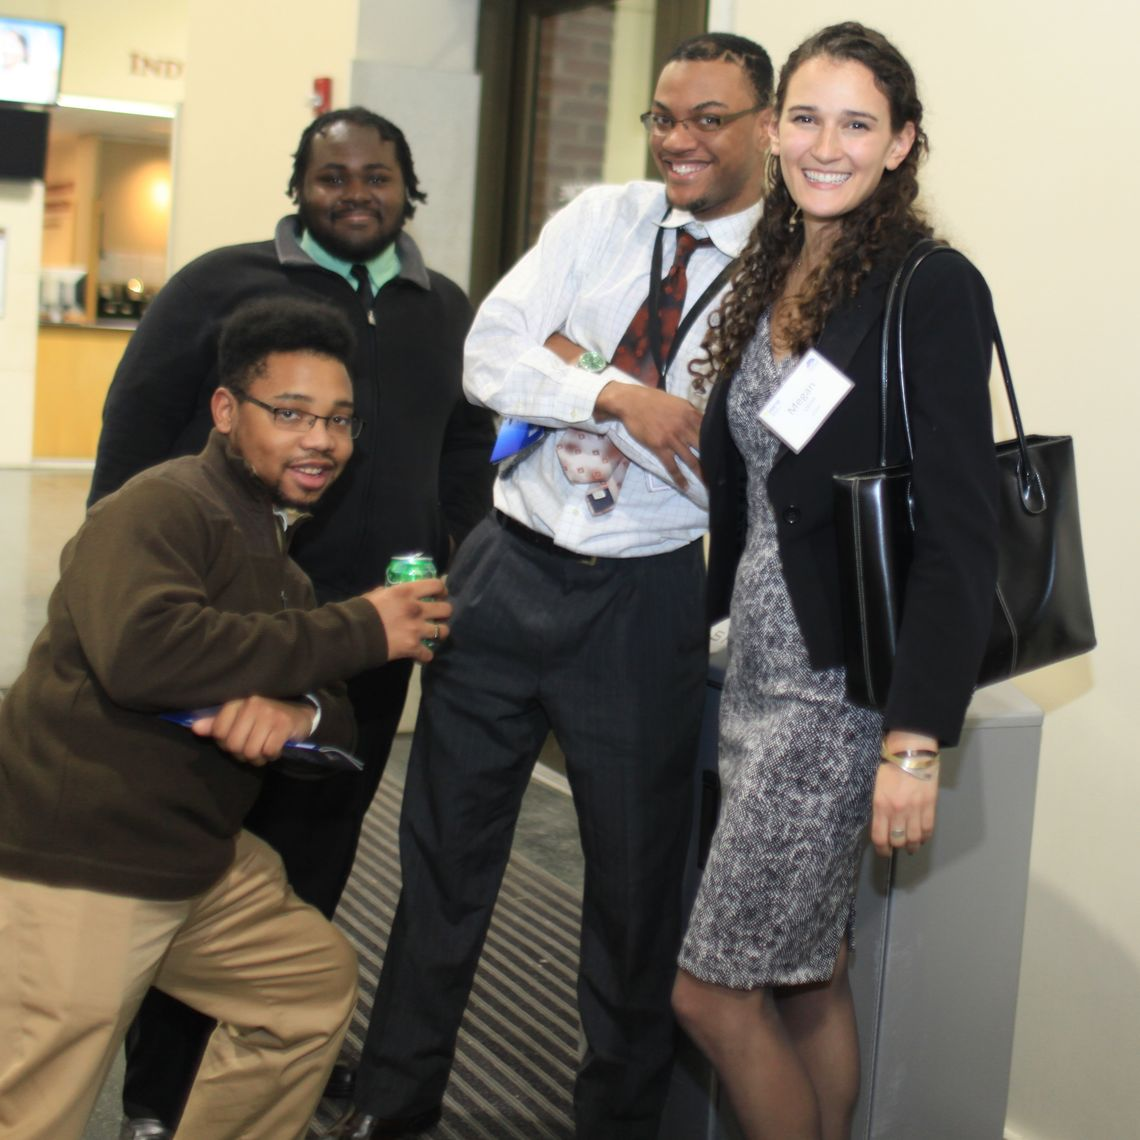 Megan Lipset '15 with some colleagues